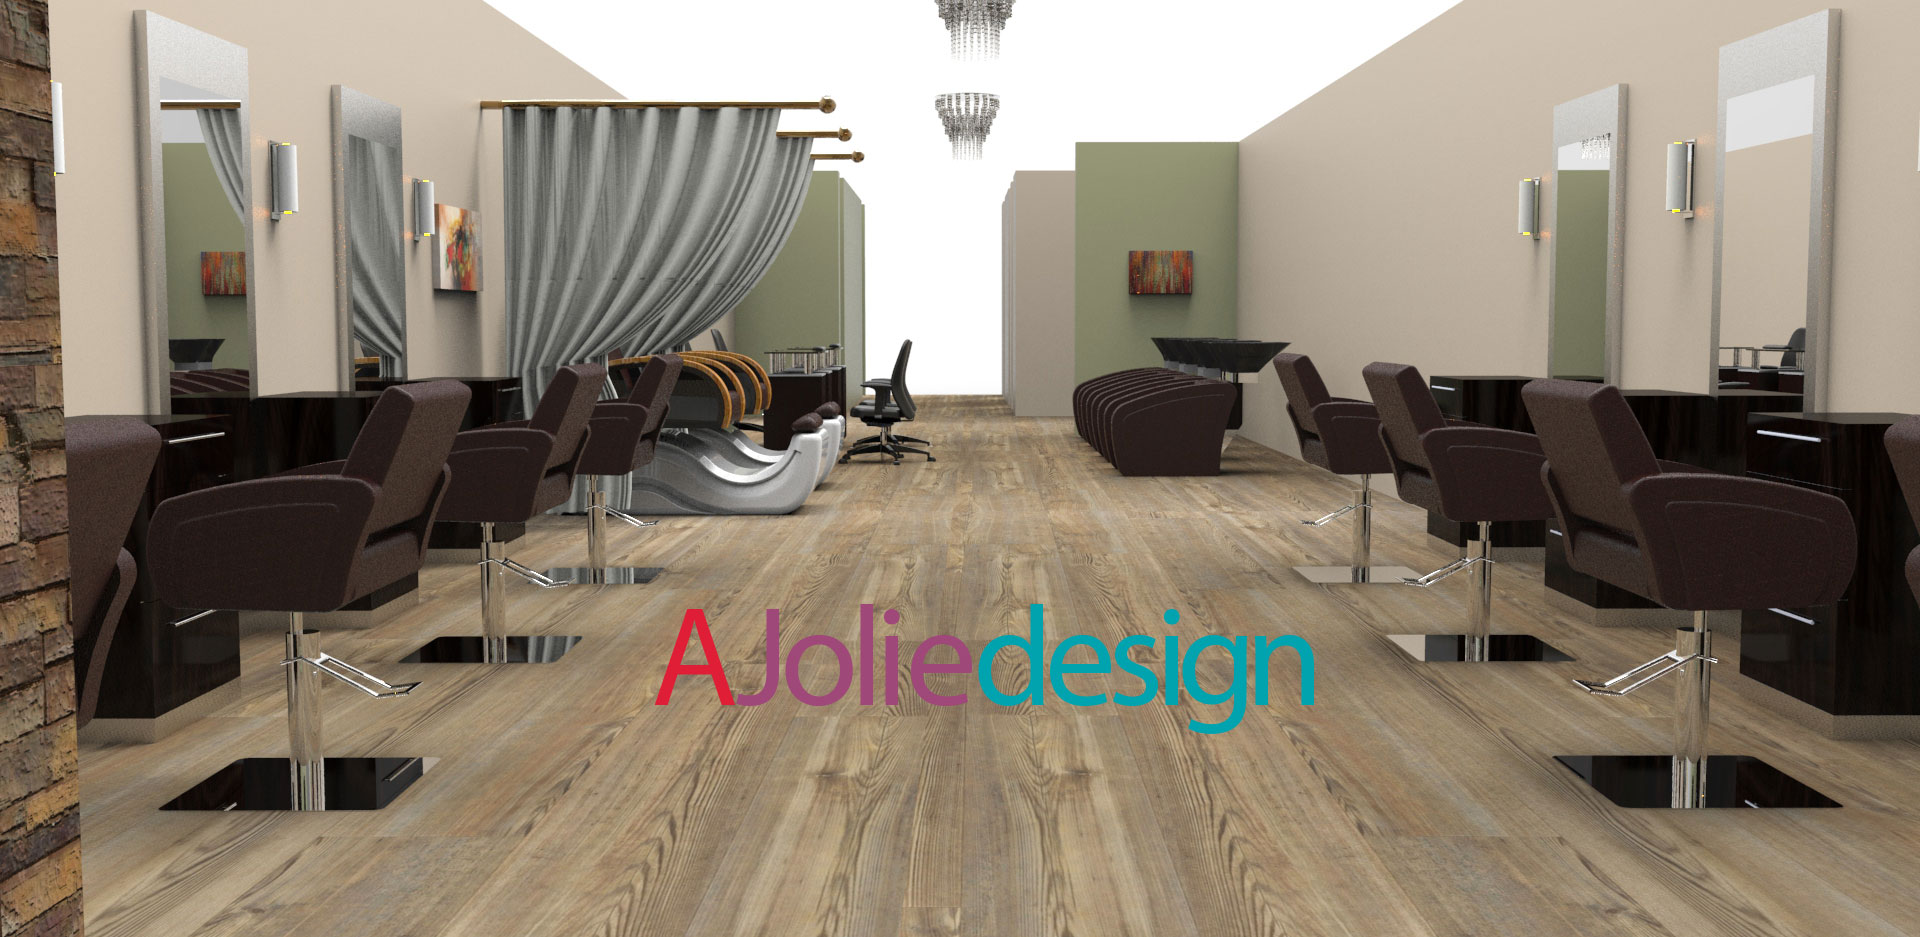 CAD Design Boards - Ajoliedesign